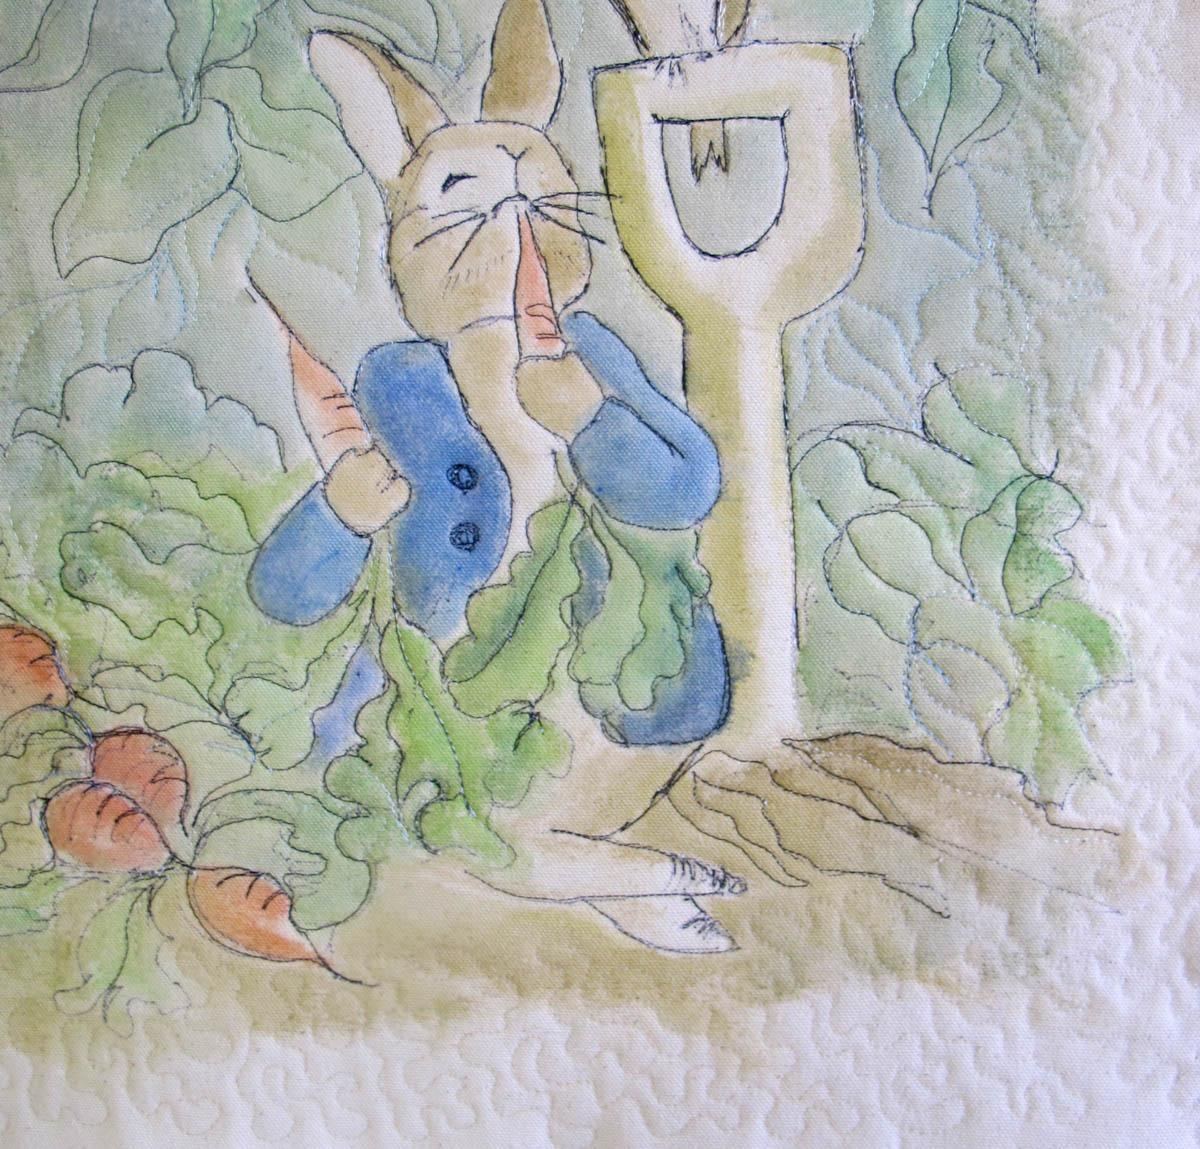 Peter Rabbit Wall Hanging | Weallsew Inside Peter Rabbit Wall Art (View 16 of 20)